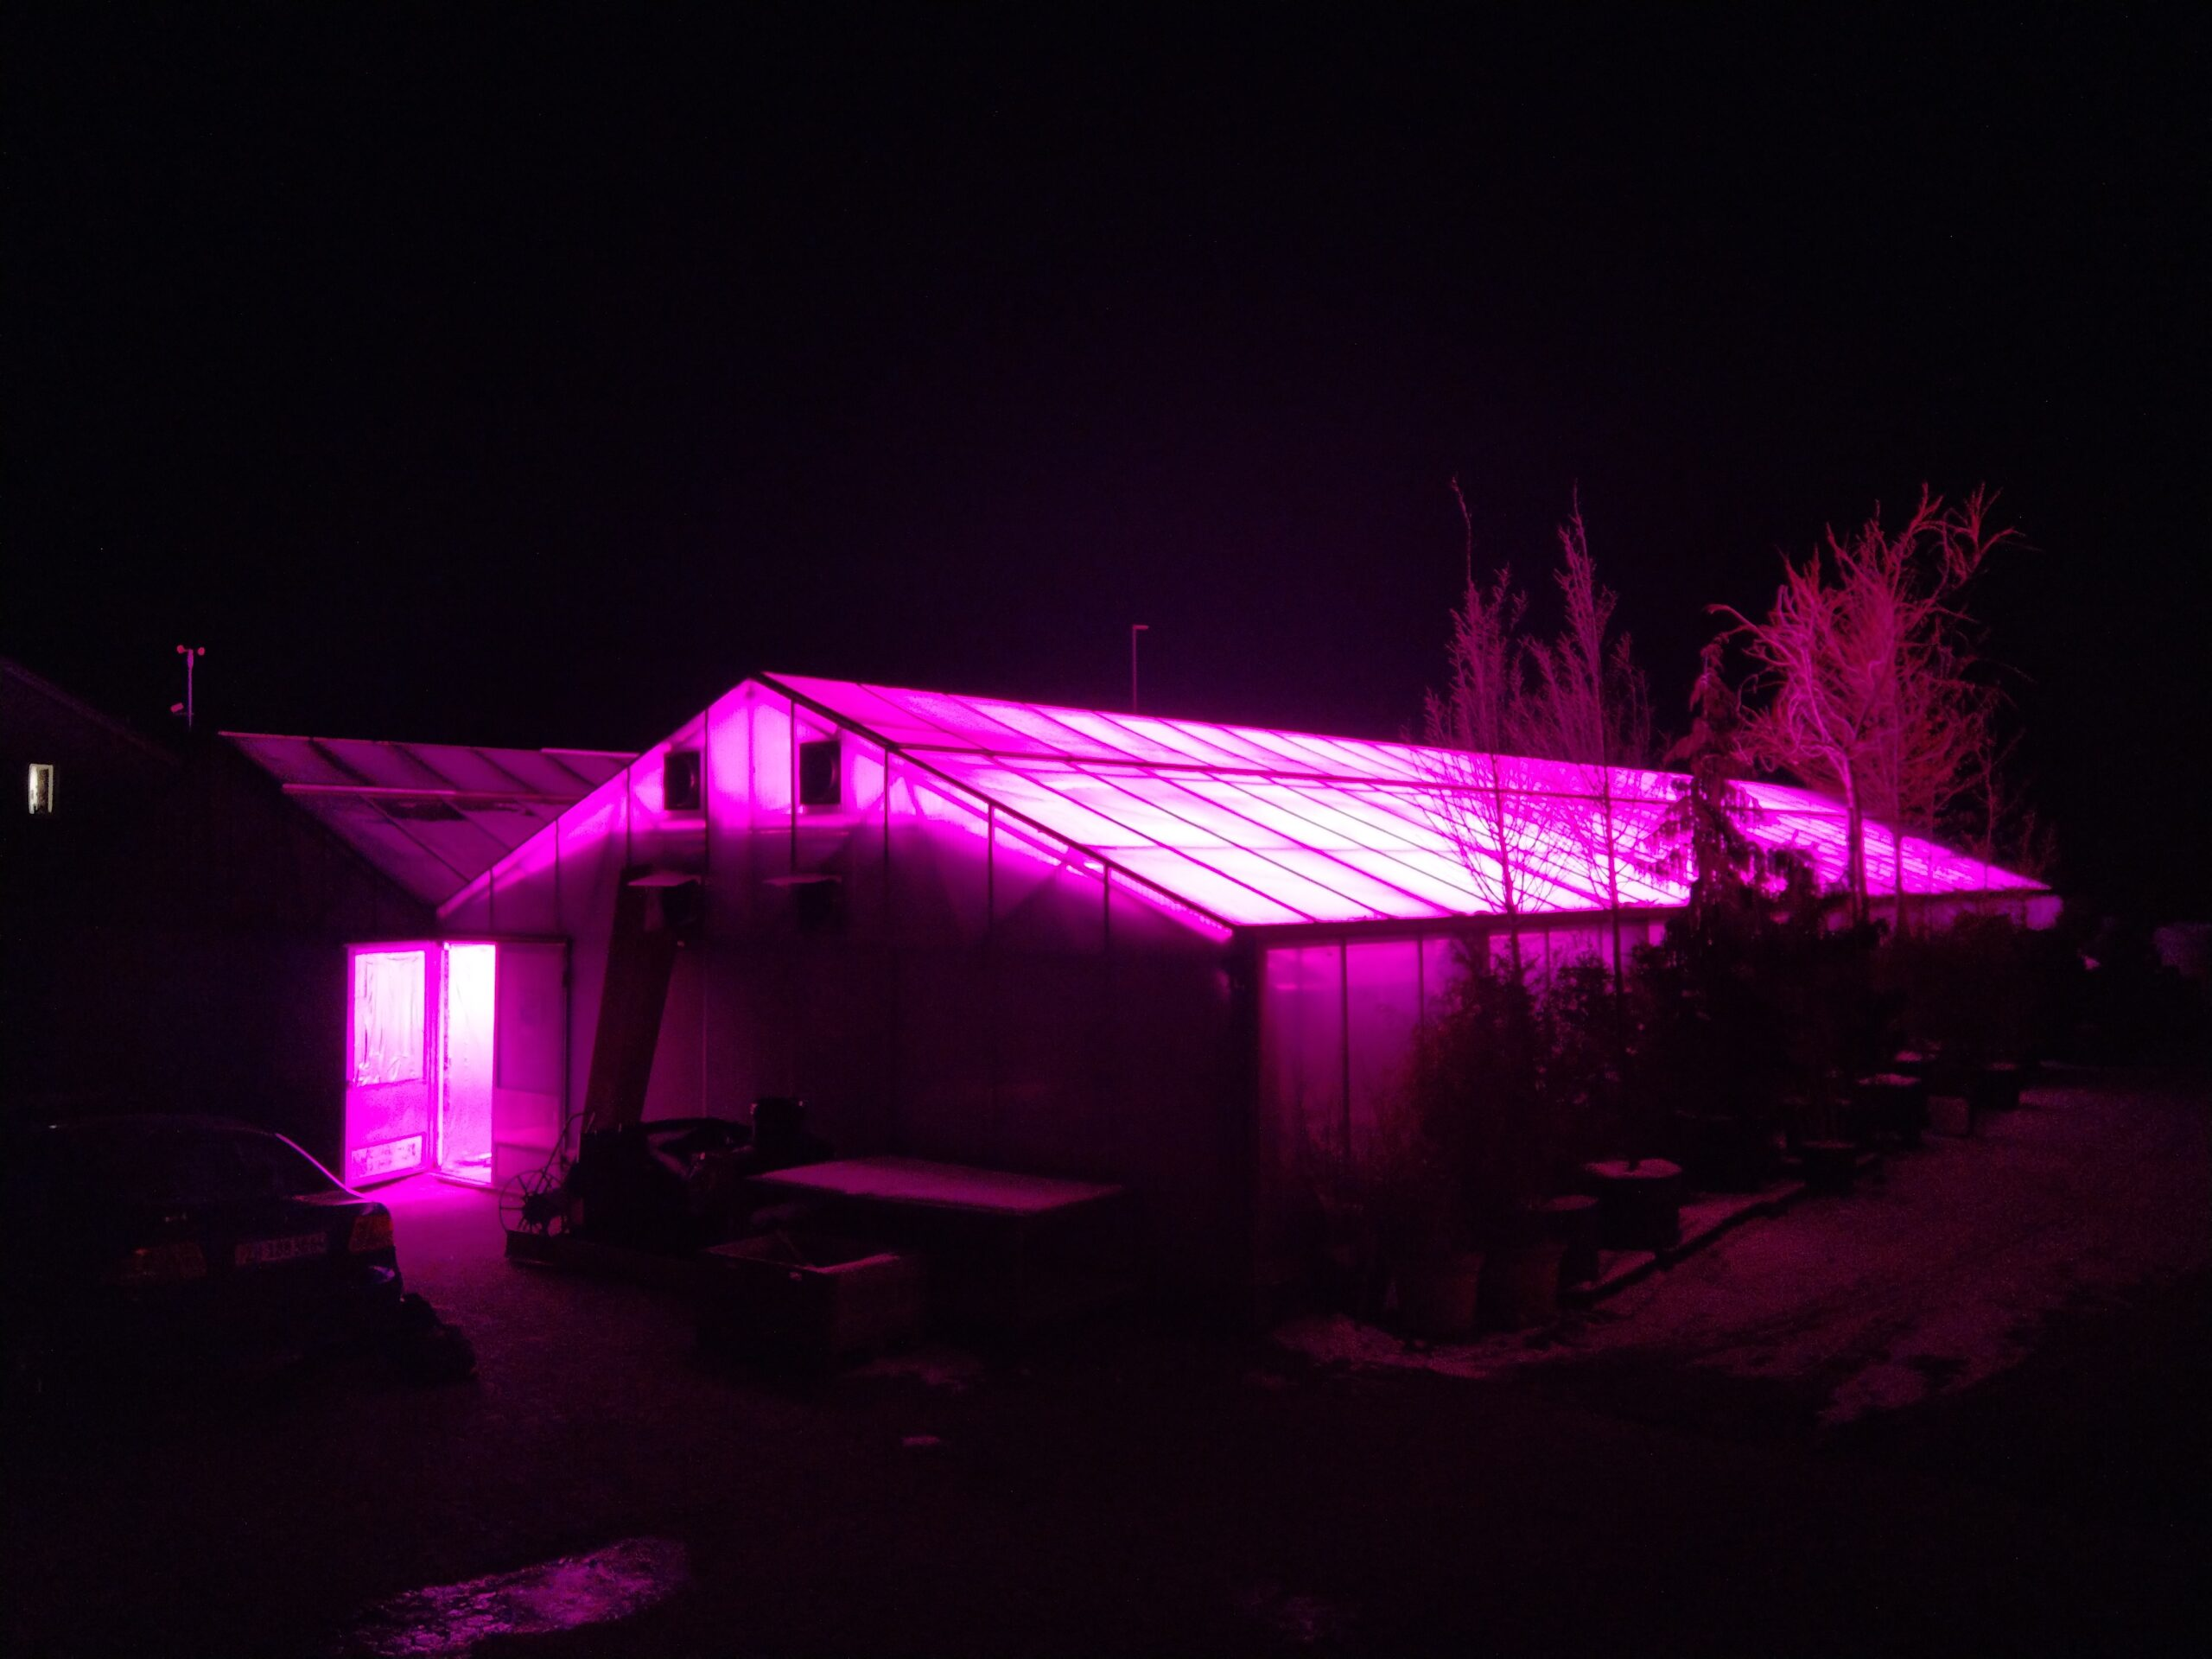 greenhouse by night